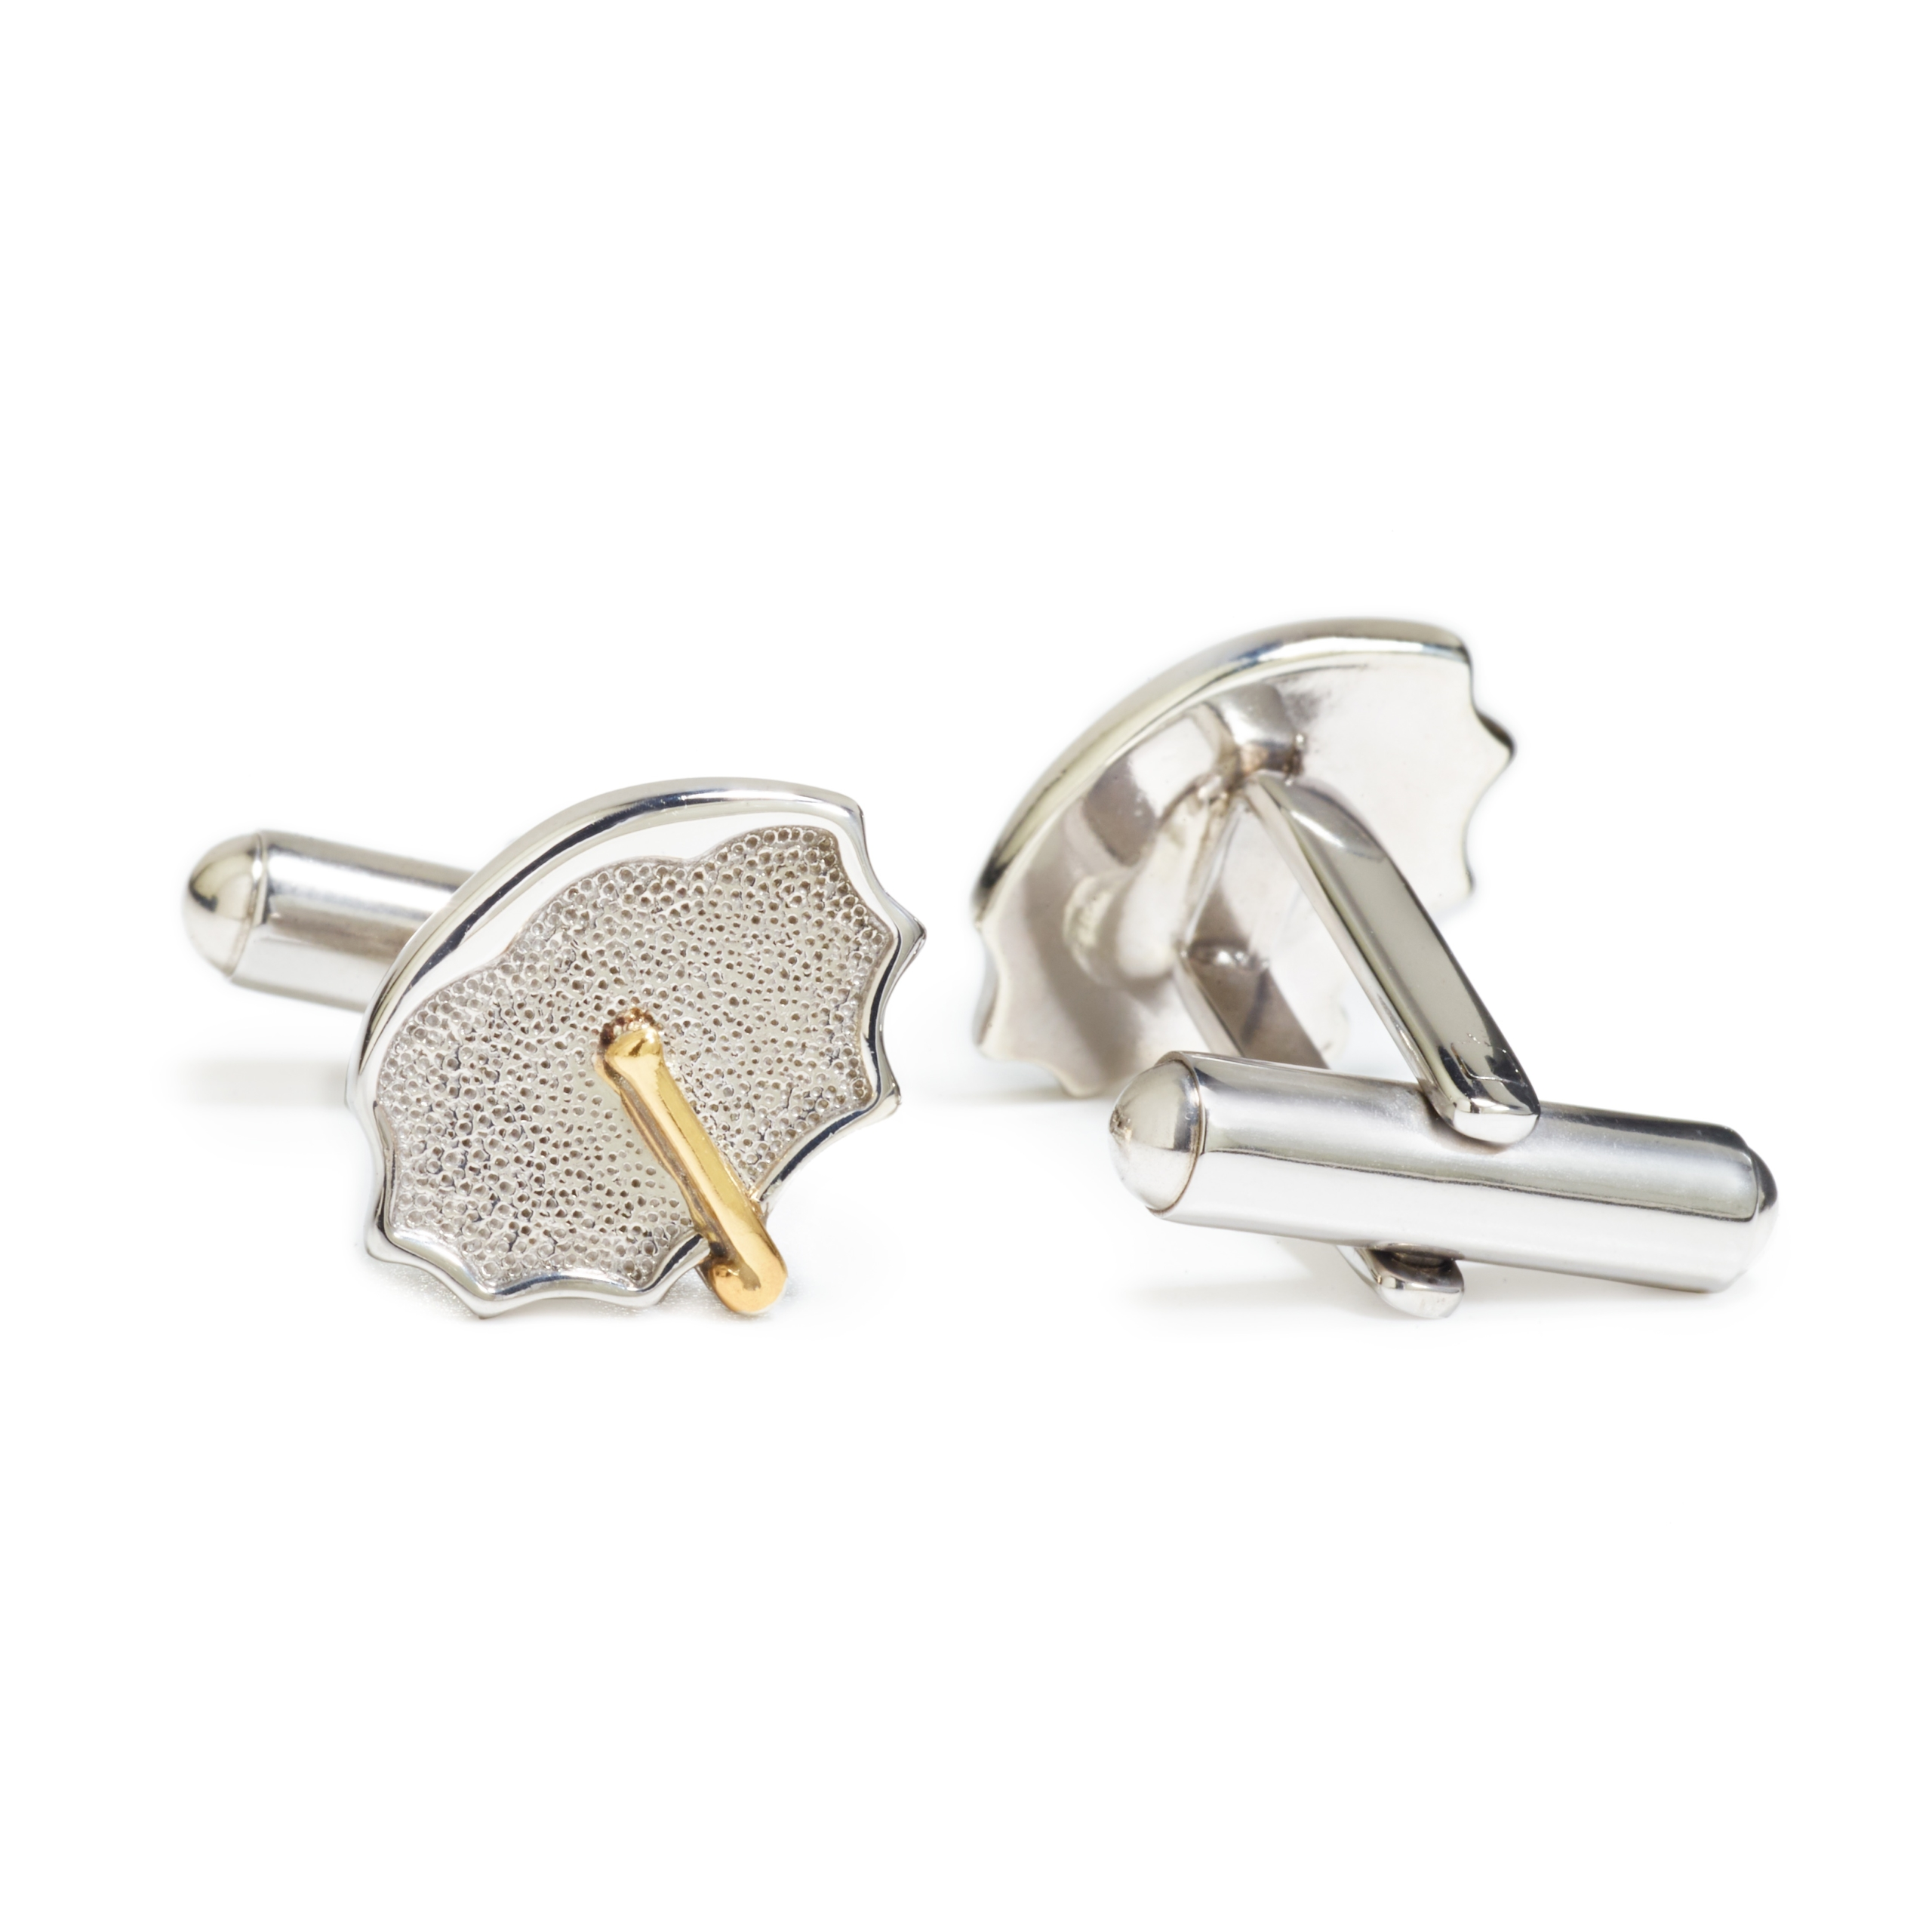 Sterling Silver with Yellow Gold Handle Umbrella Cuff Links (pair)